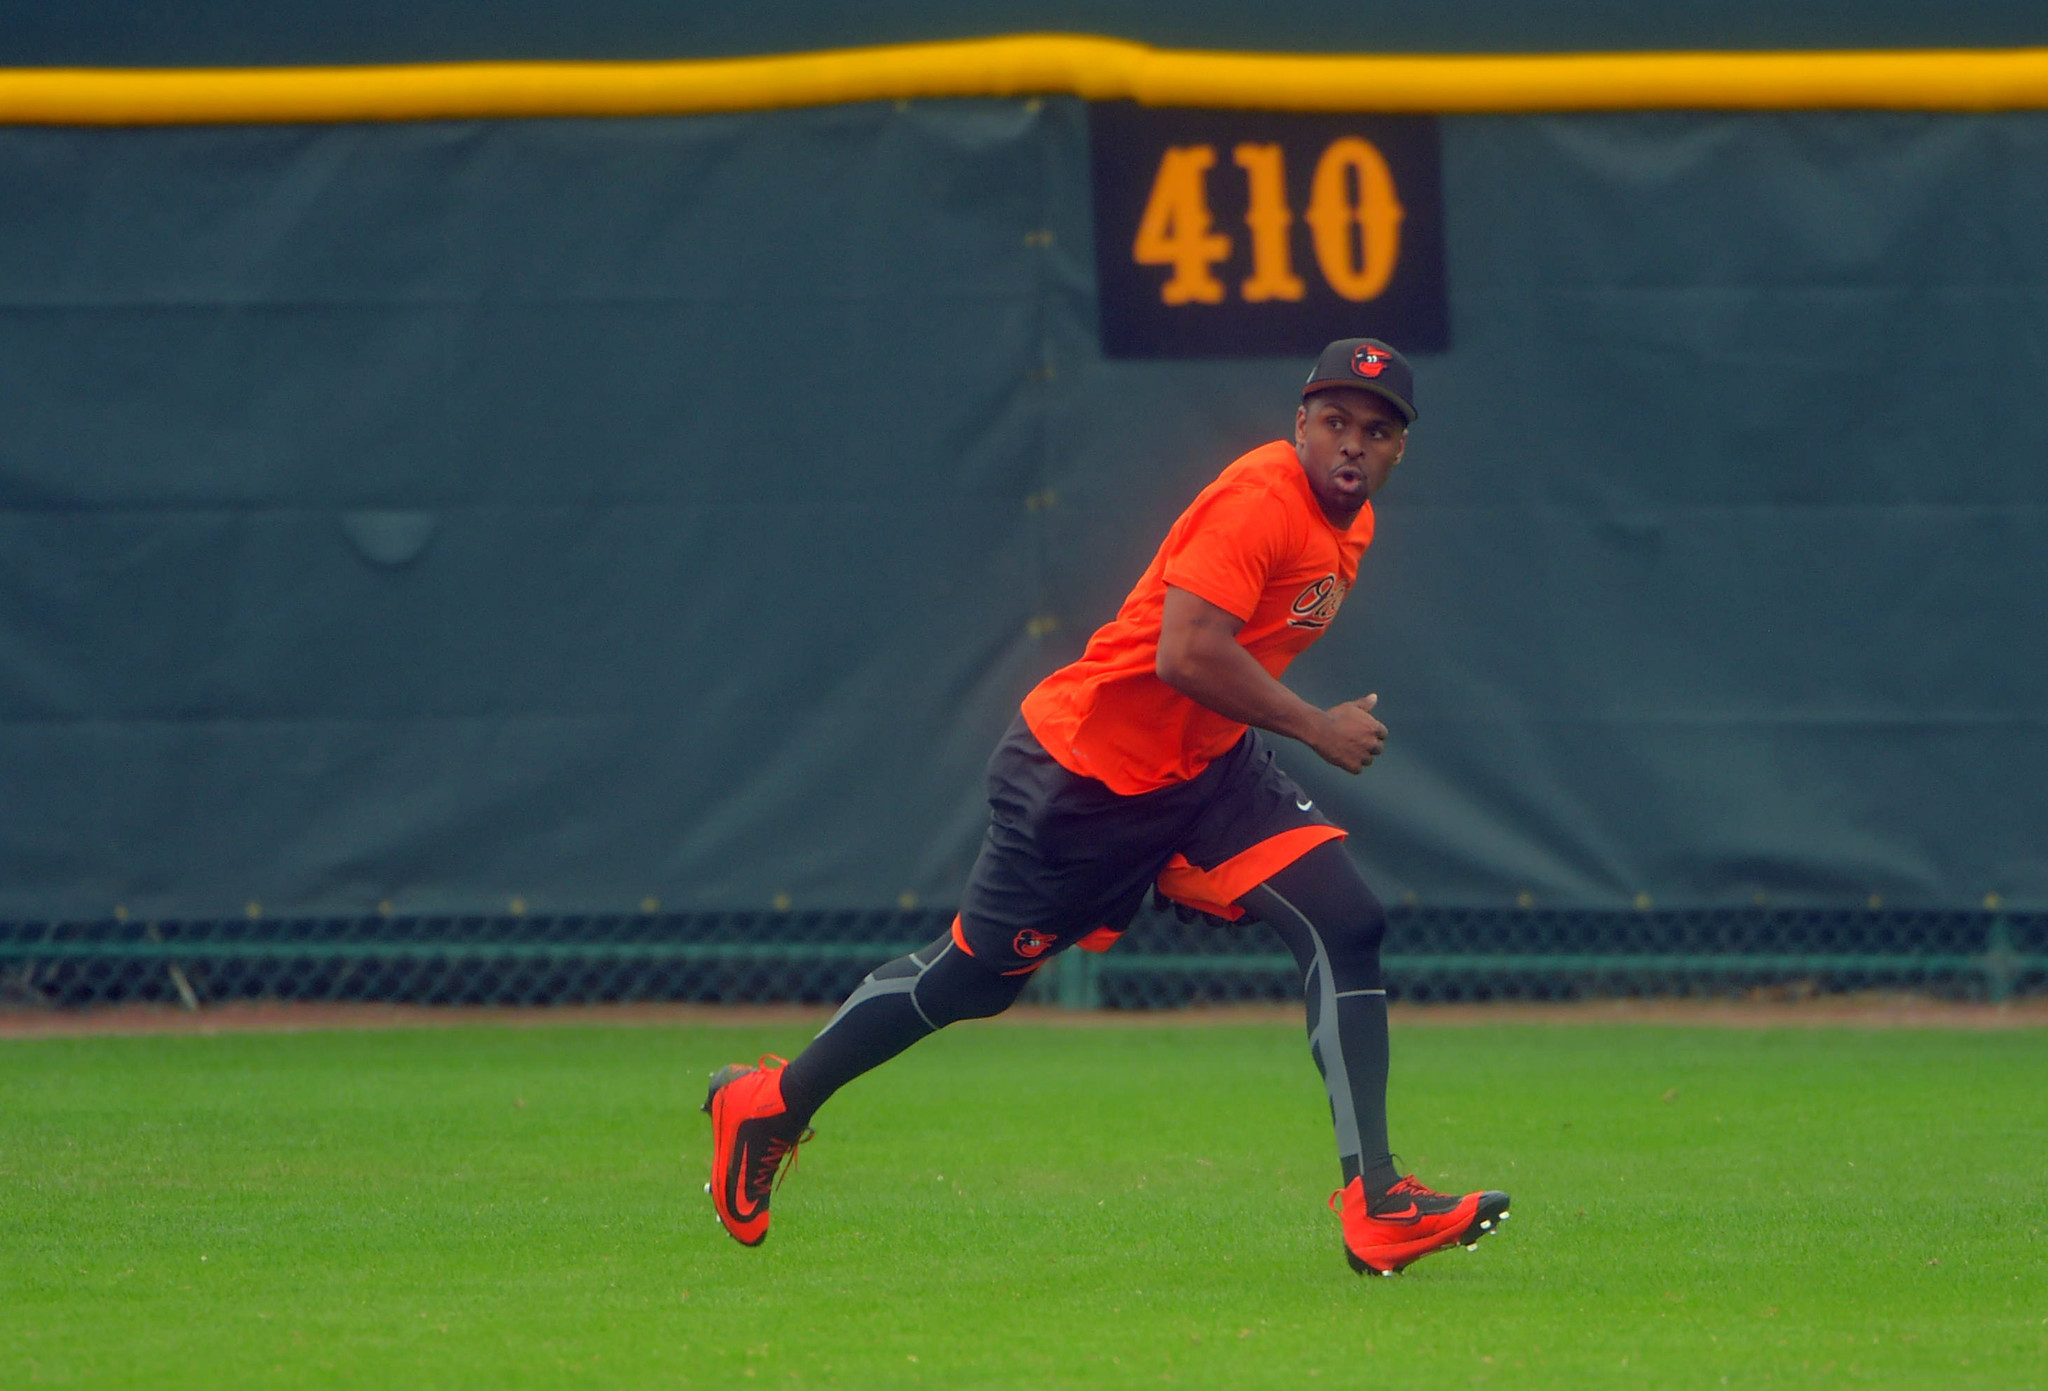 Bal-orioles-outfielder-michael-bourn-out-four-weeks-with-broken-ring-finger-injured-playing-football-20170225